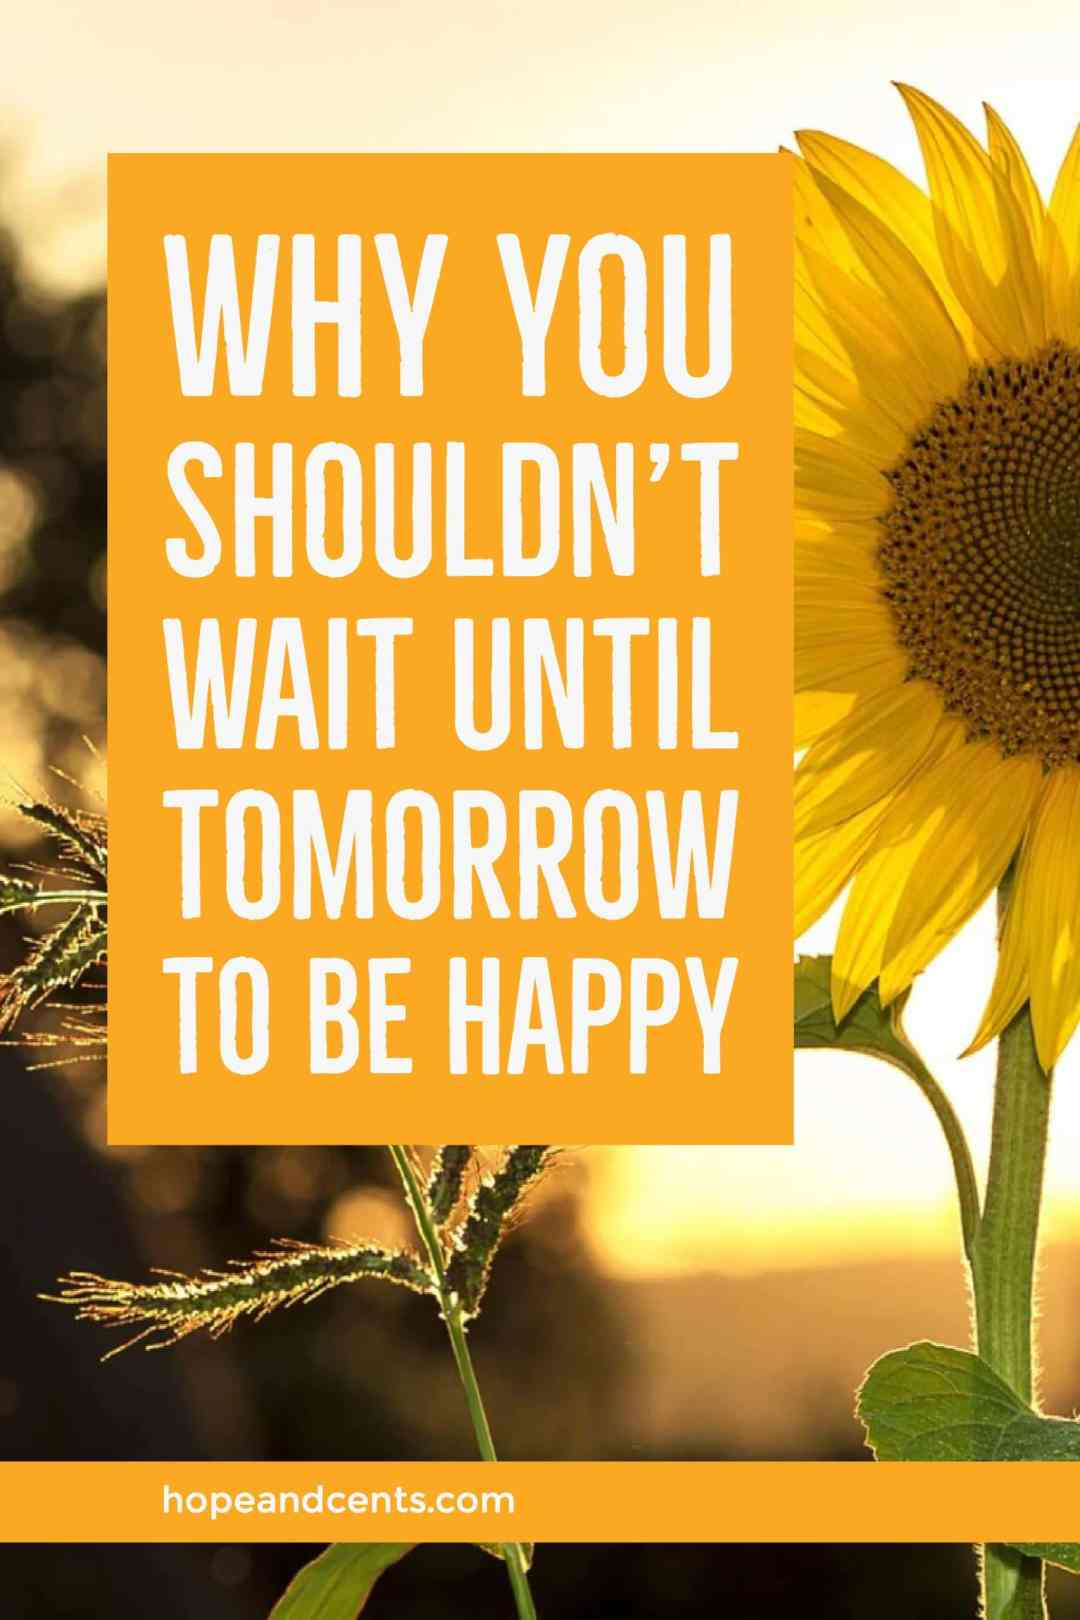 Believing you'll be happy only when certain conditions are met is harmful to the joy you could be experiencing today.